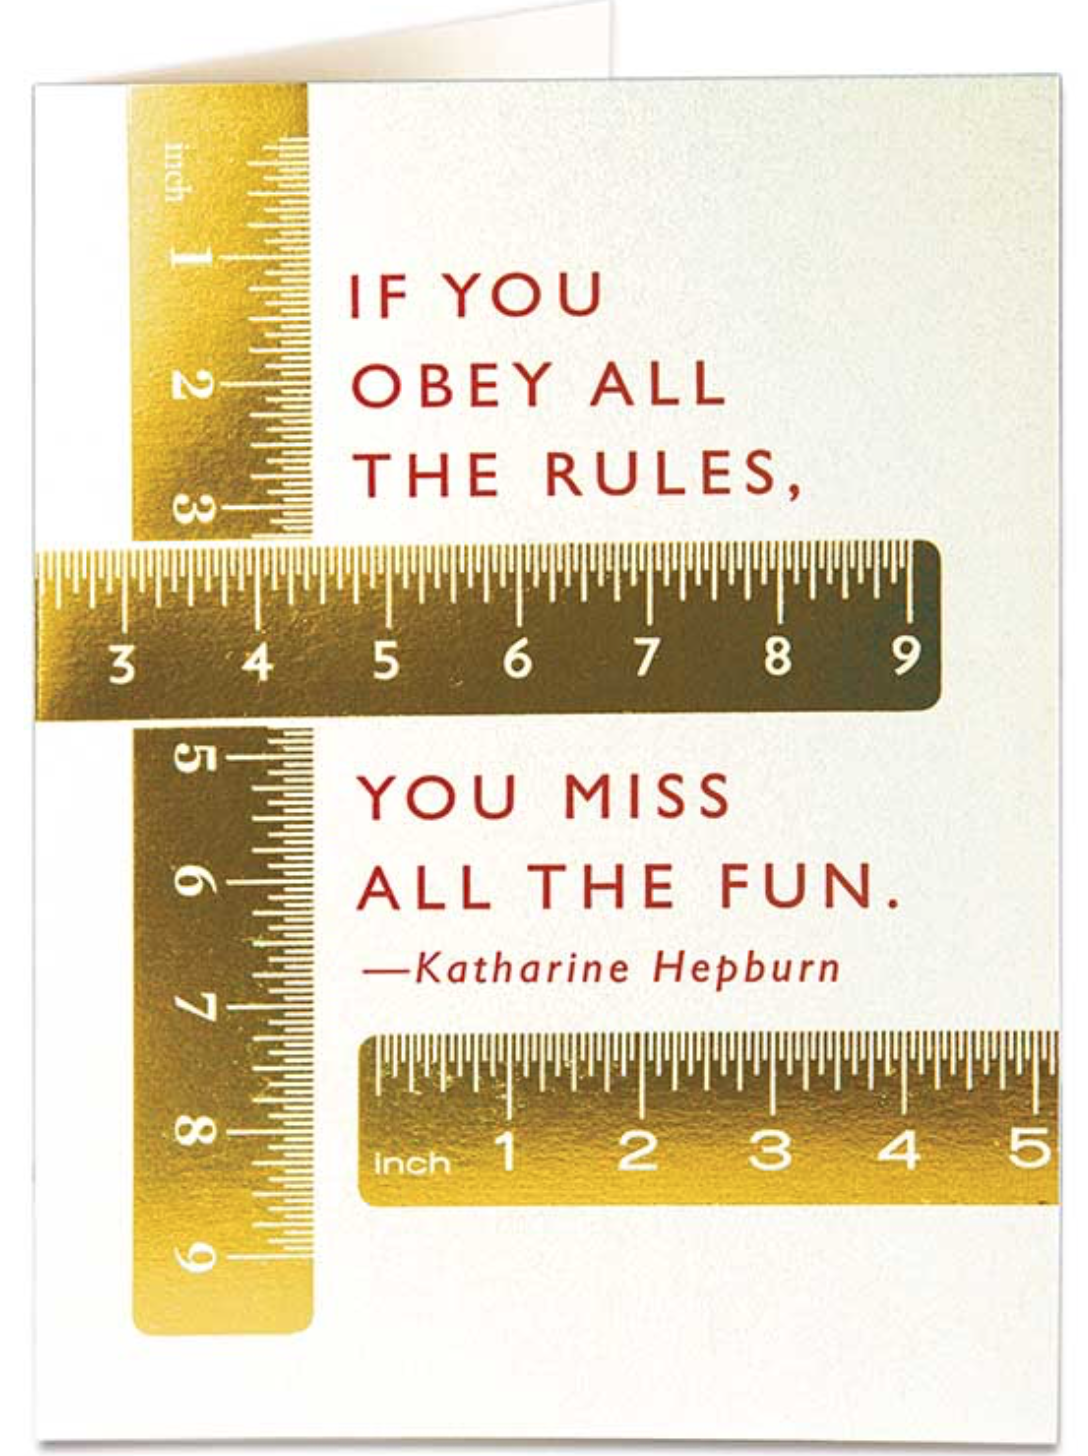 The Rules - Letterpress Greetings Card